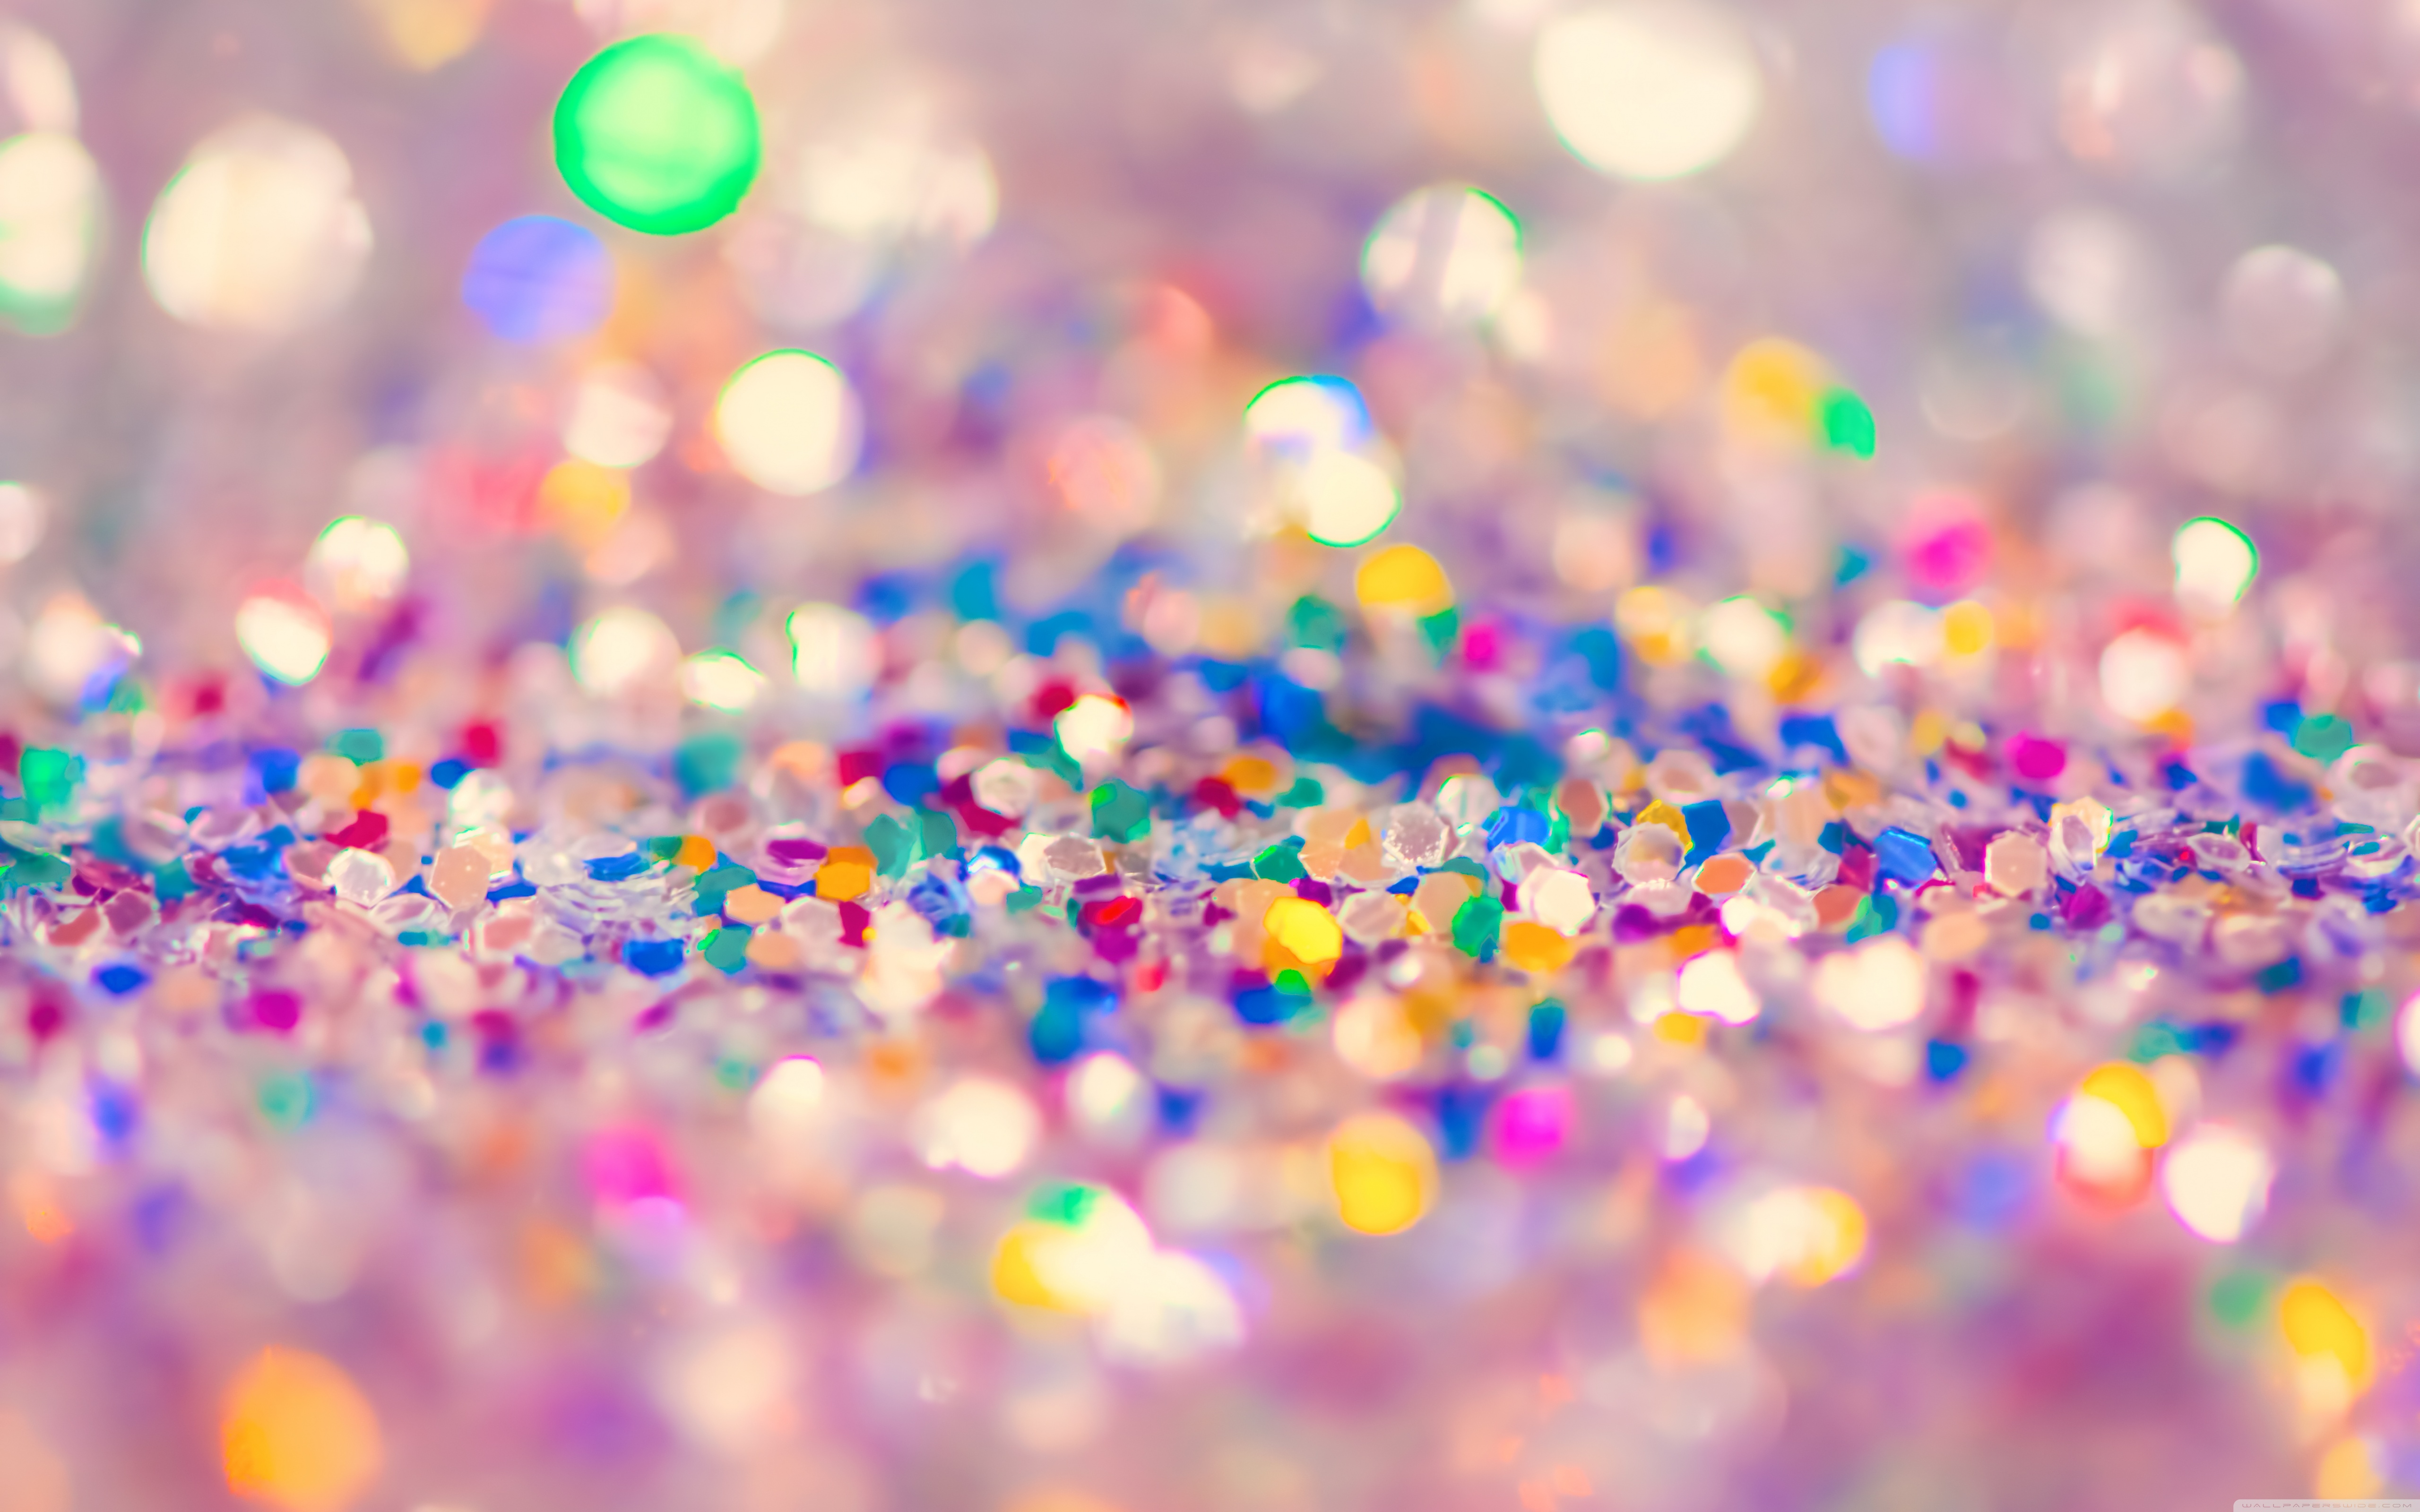 Free Download Colorful Glitter 4k Hd Desktop Wallpaper For